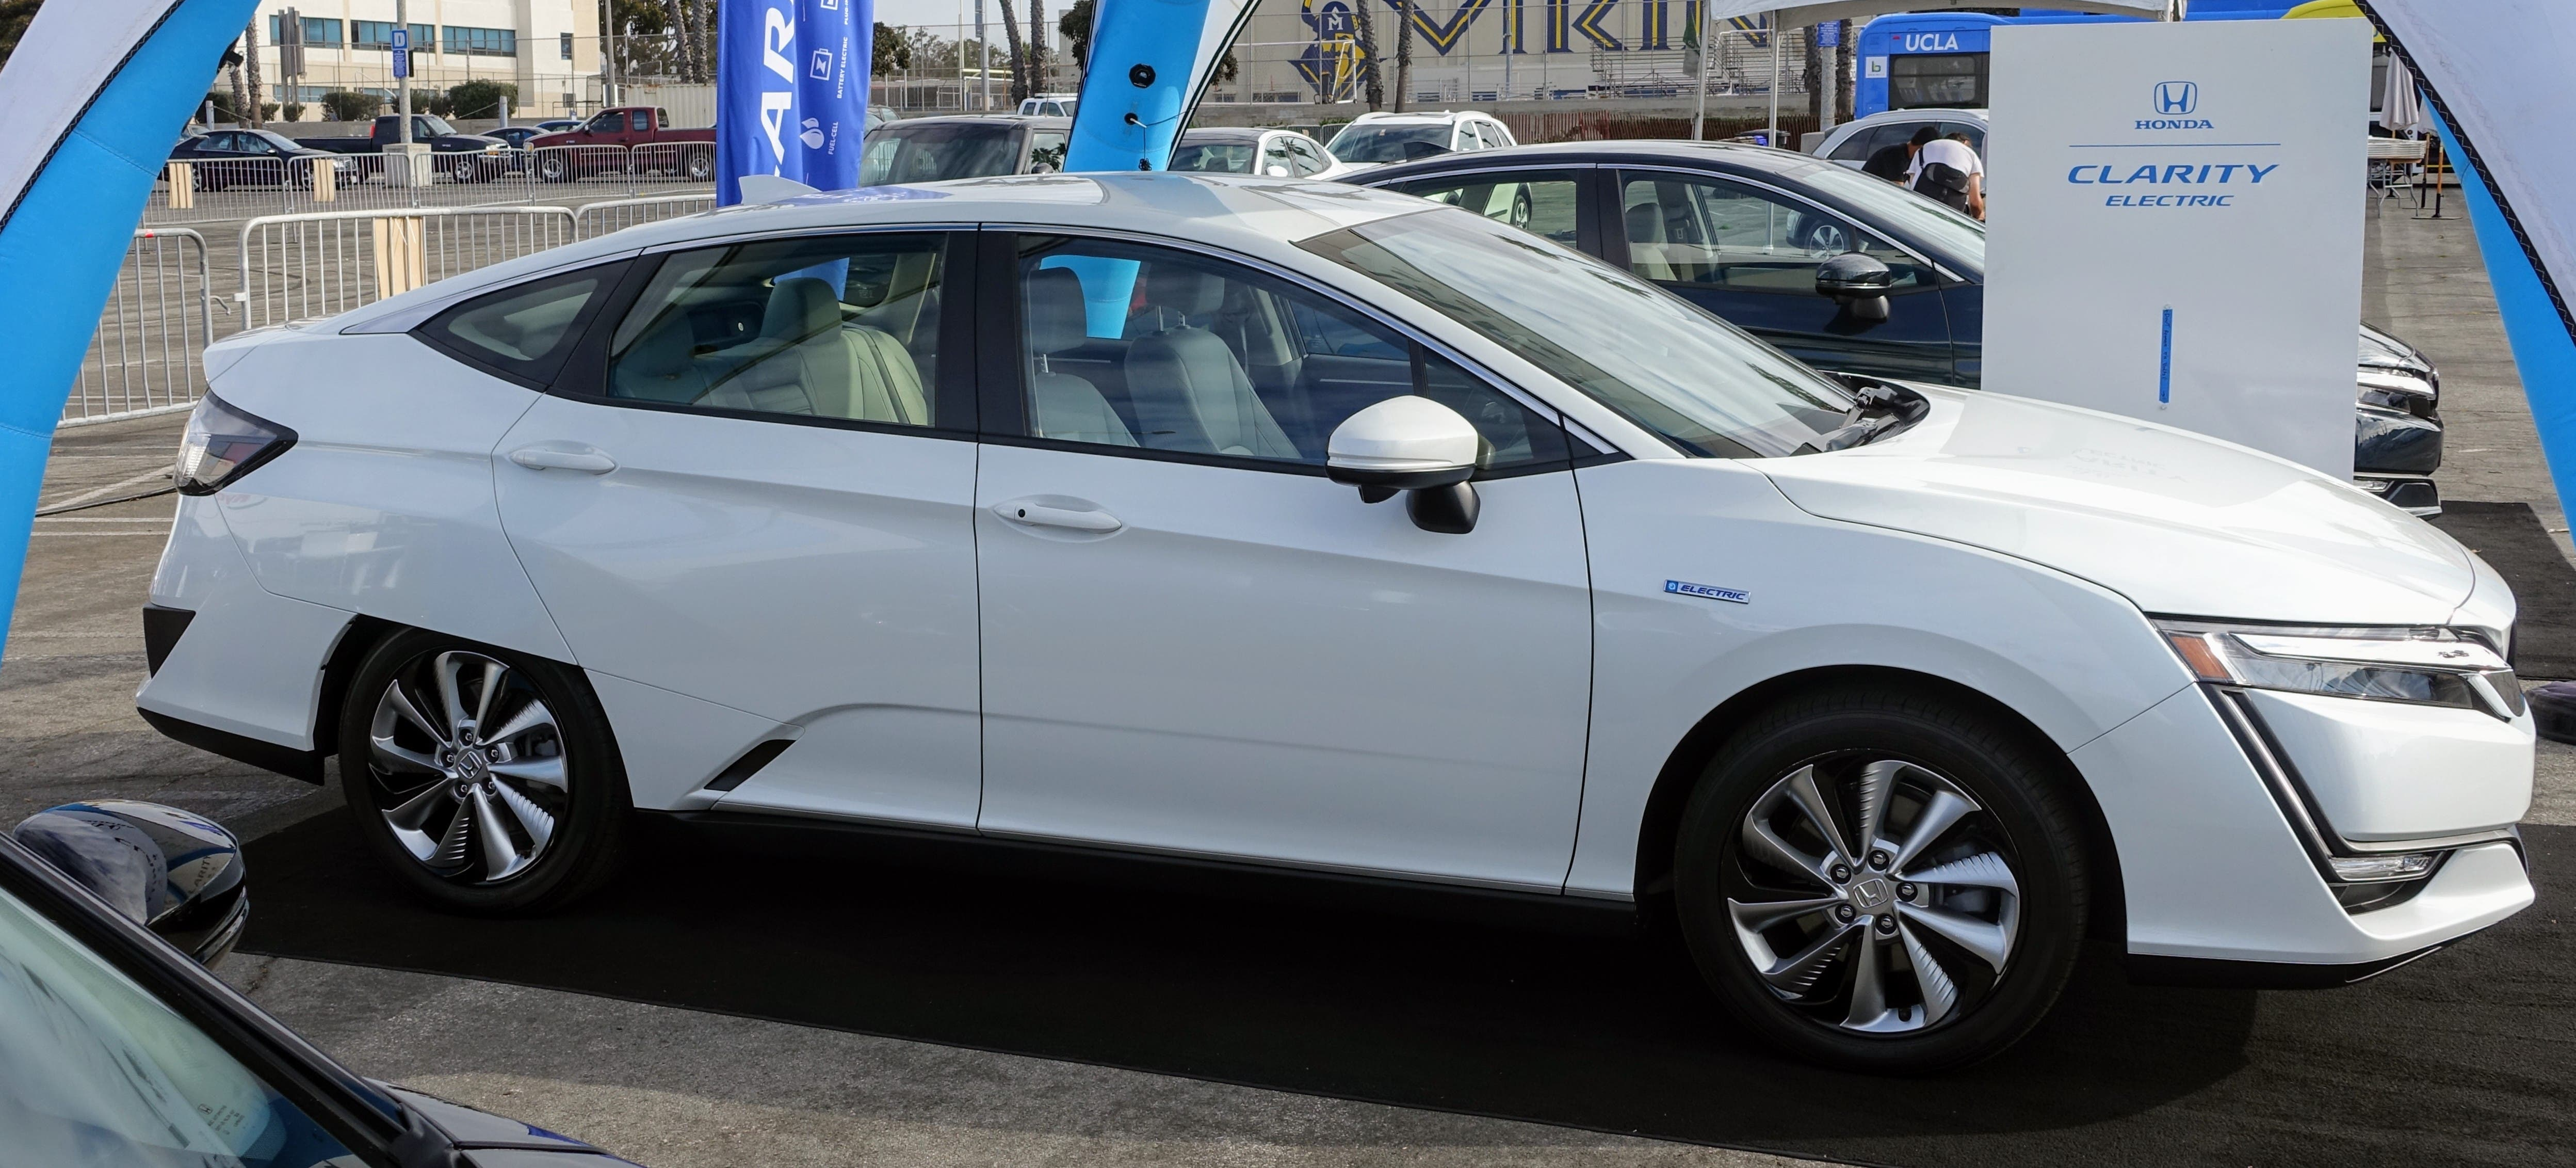 Santa Monica Alt Car Expo Brings EVs To The People ... on